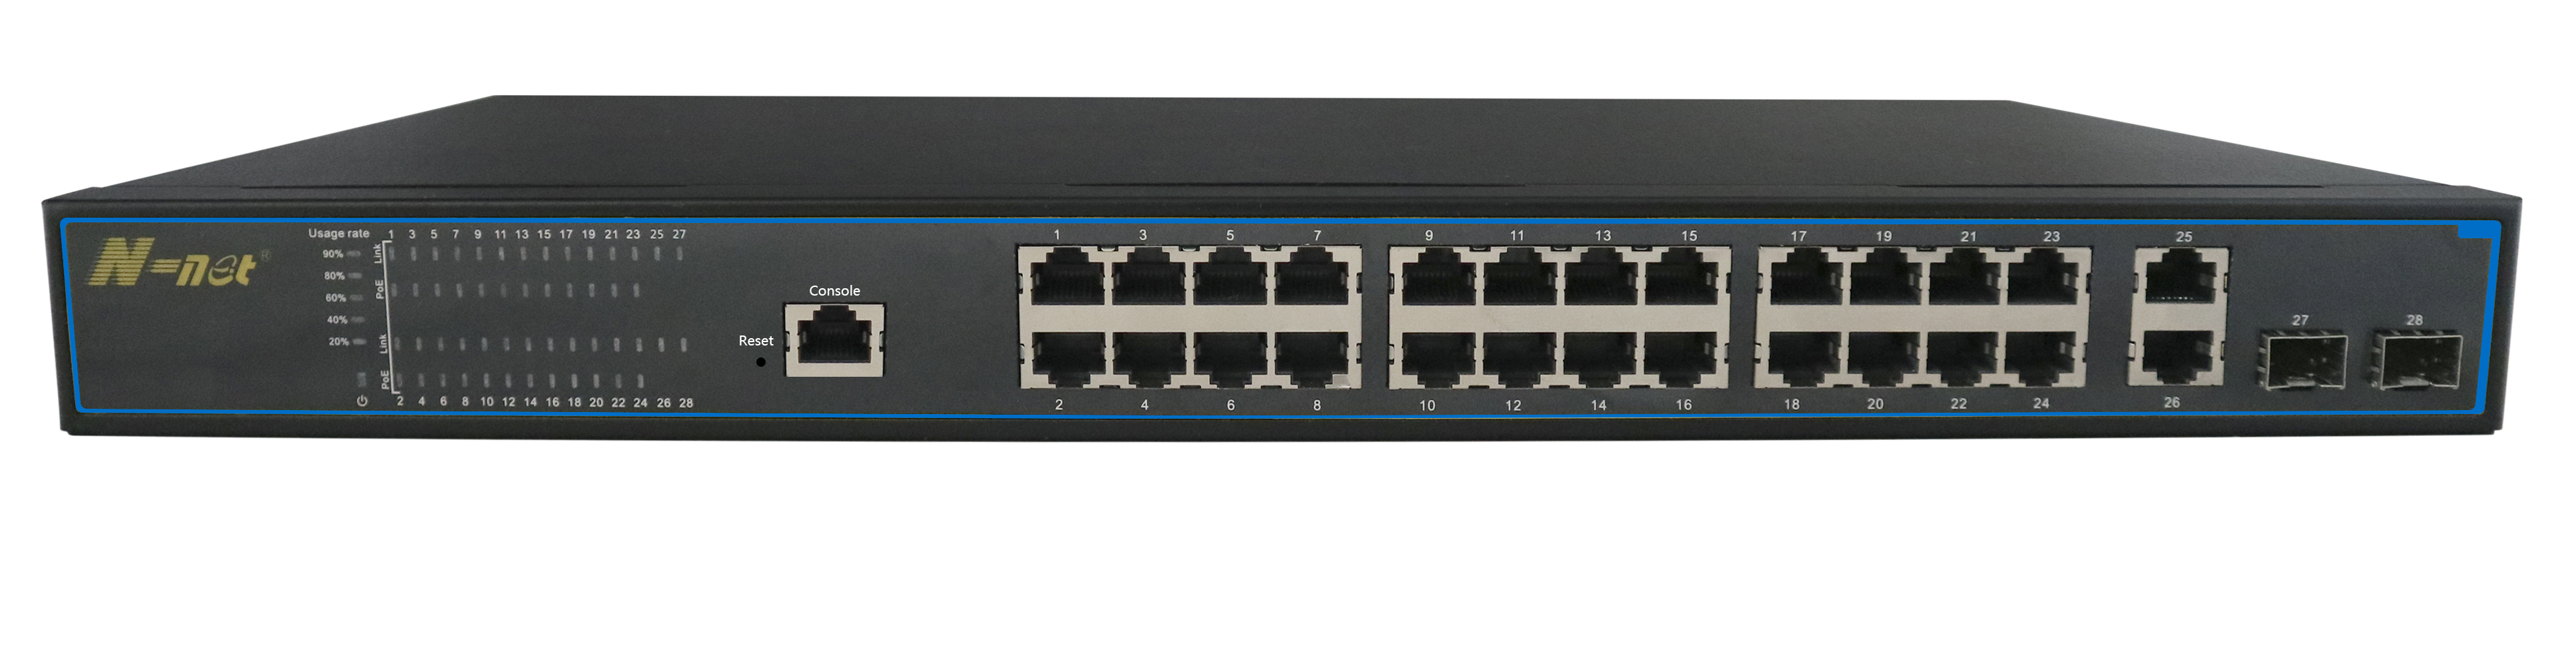 NC3244PGM   28 port L2 managed PoE switch